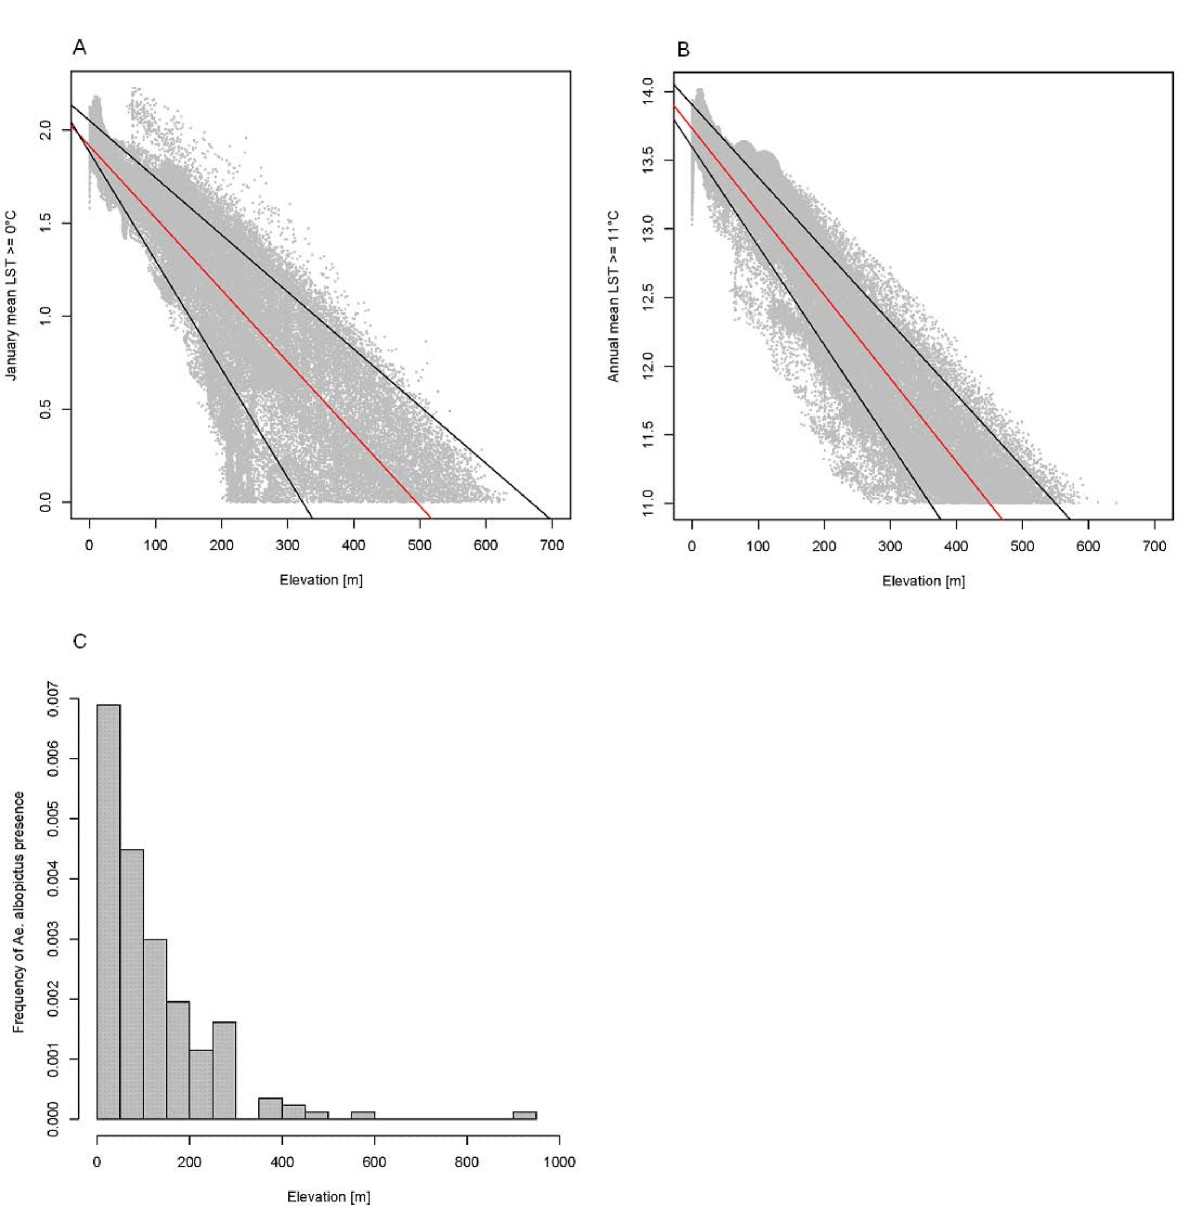 http://static-content.springer.com/image/art%3A10.1186%2F1476-072X-10-49/MediaObjects/12942_2011_Article_443_Fig5_HTML.jpg